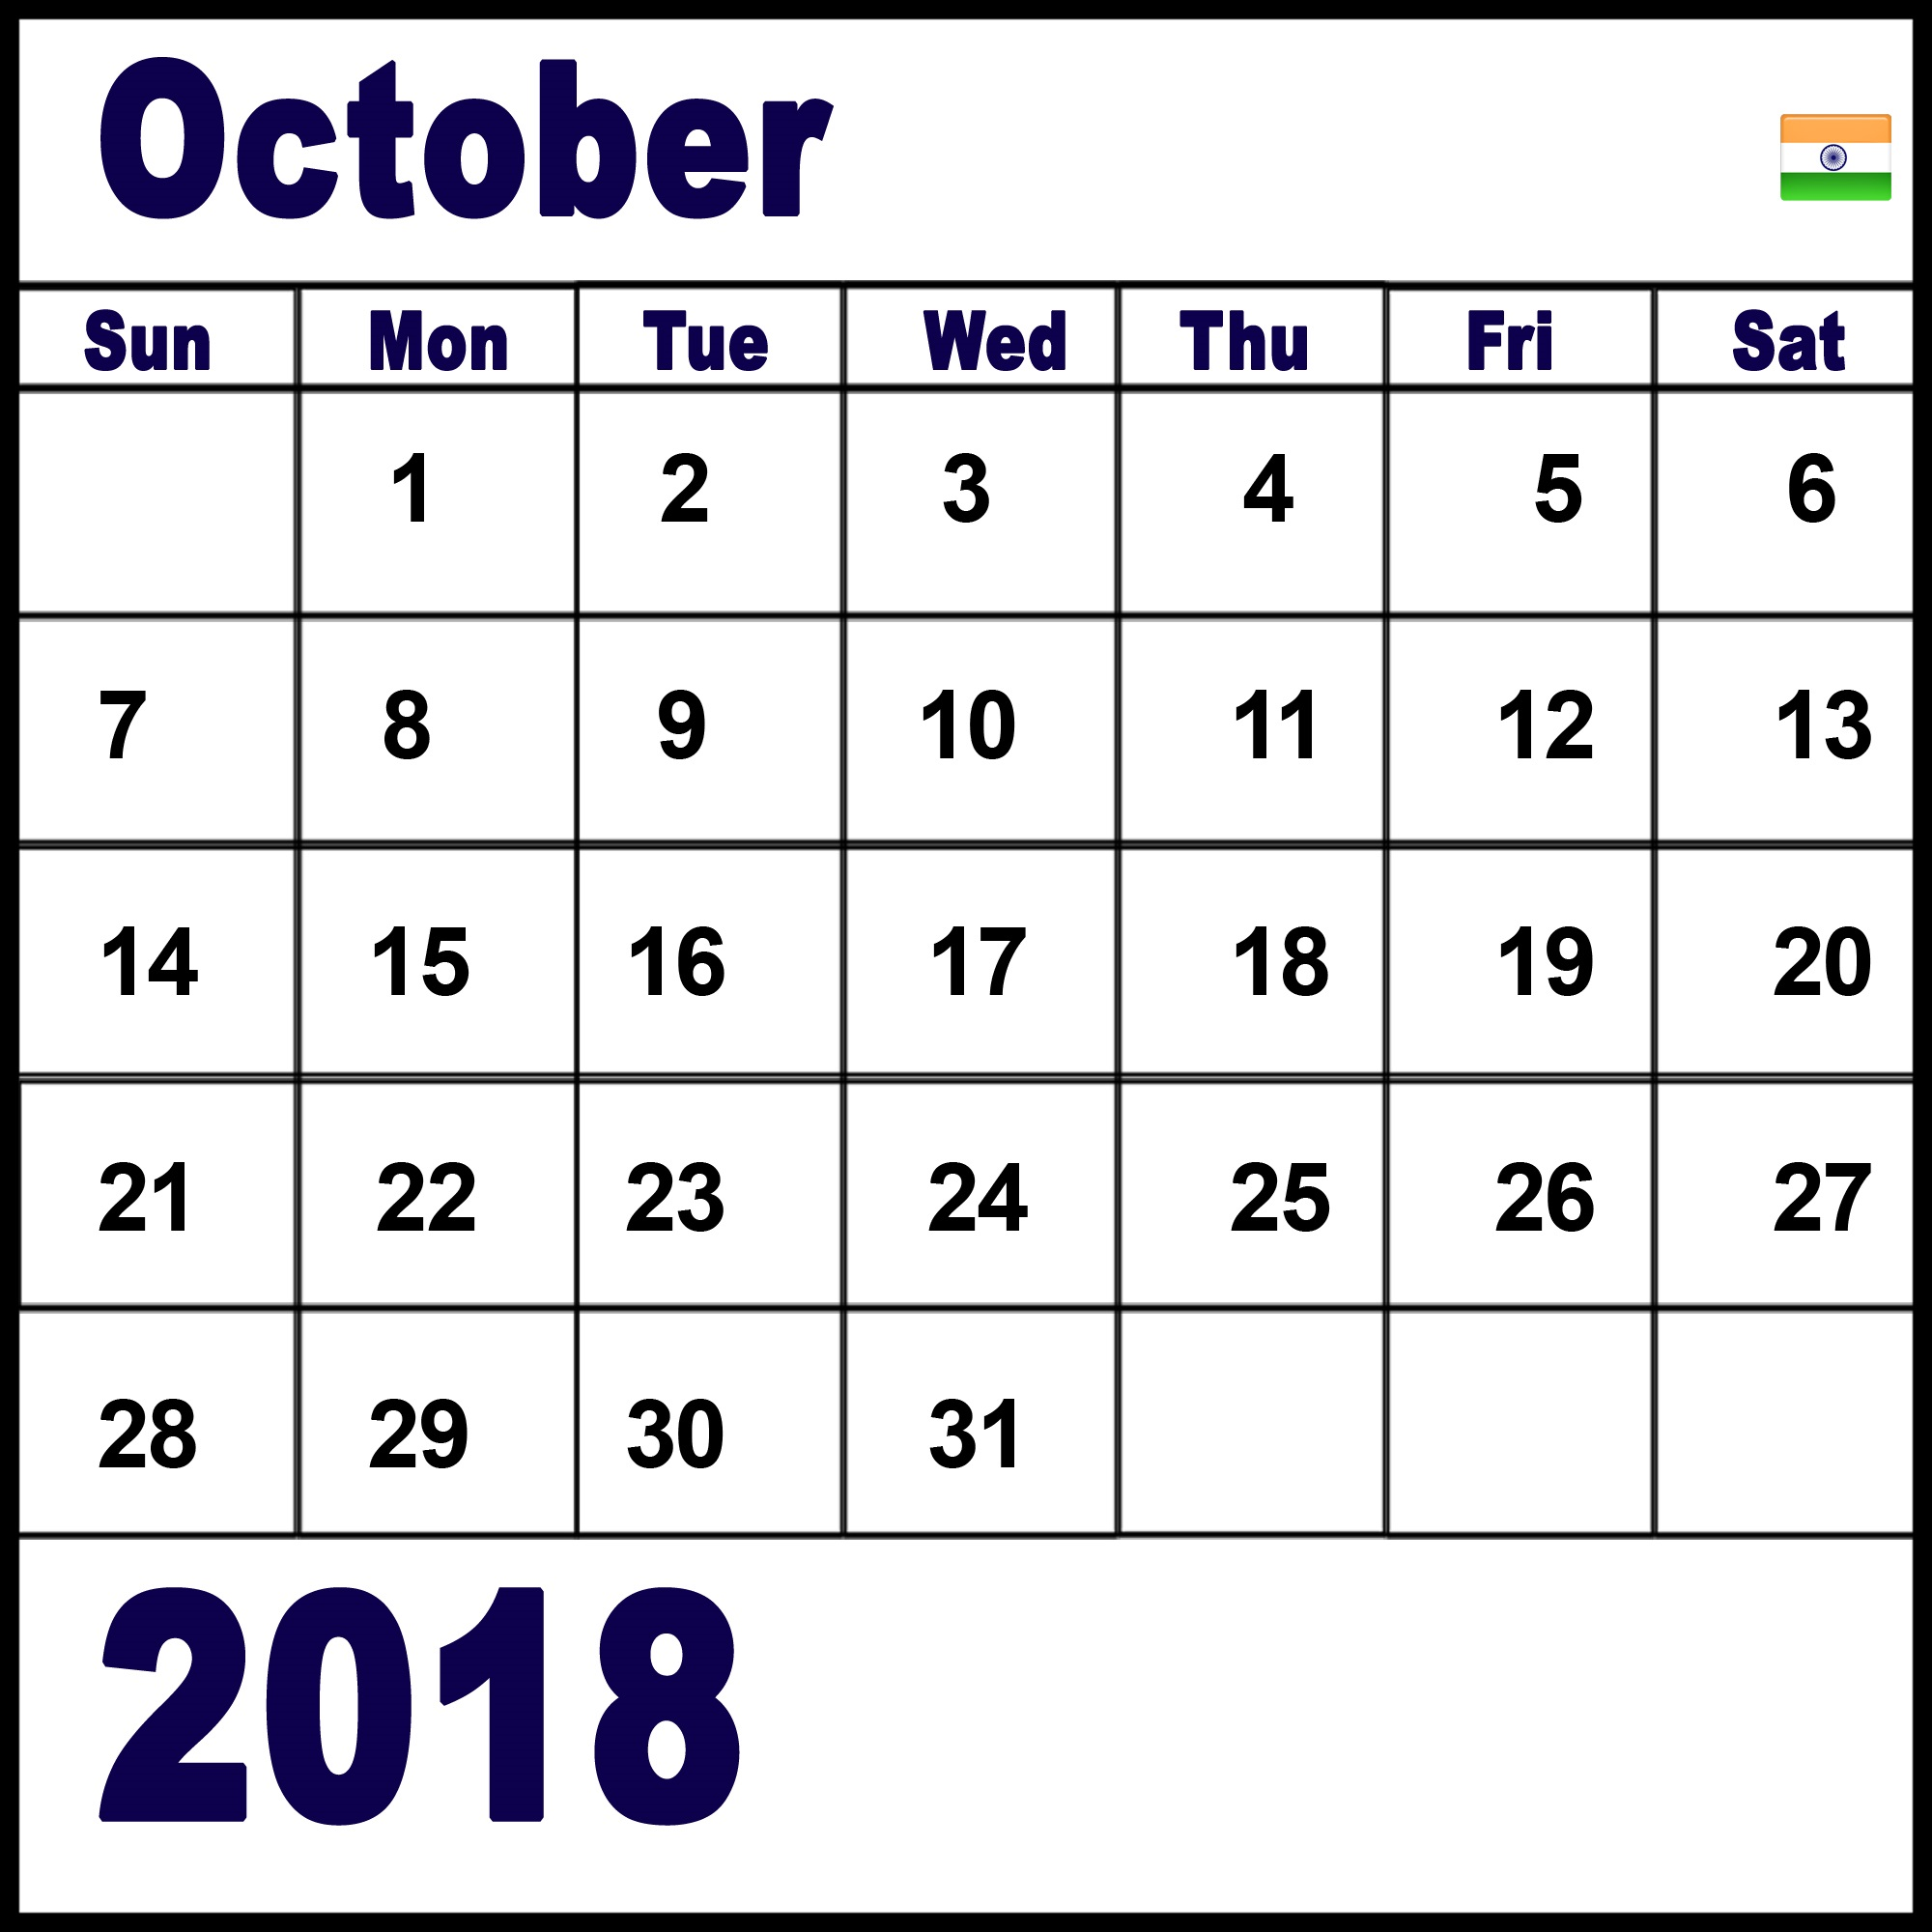 october 2018 calendar with holidays indian